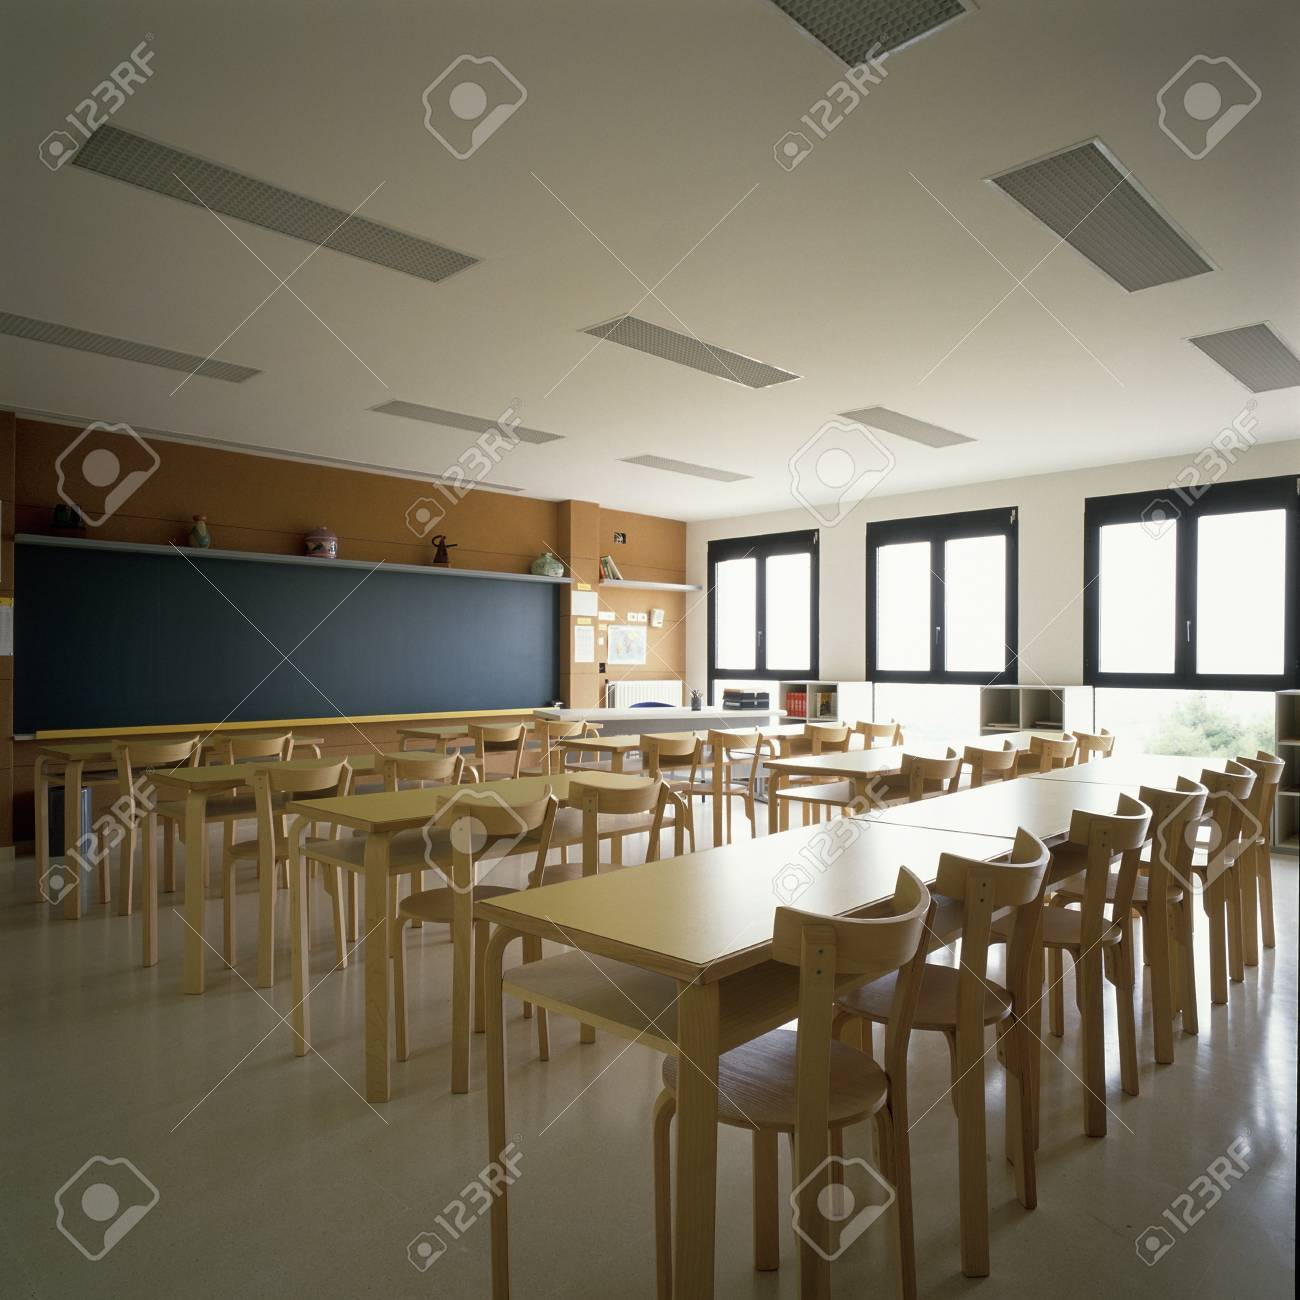 View of an eclectic classroom Stock Photo - 7215332